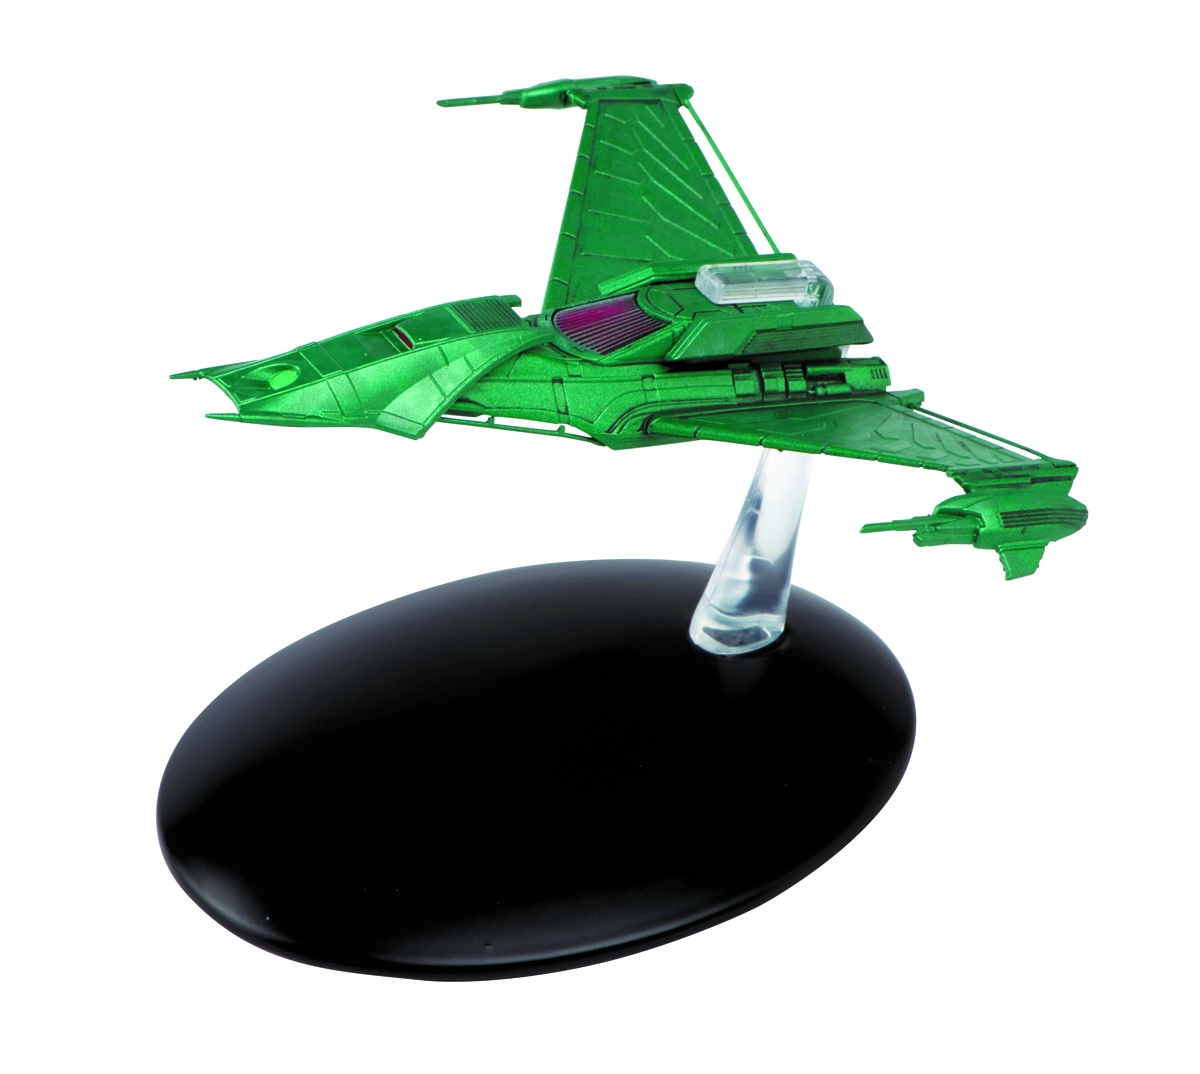 STAR TREK STARSHIPS FIG MAG #53 KLINGON ATTACK SHIP